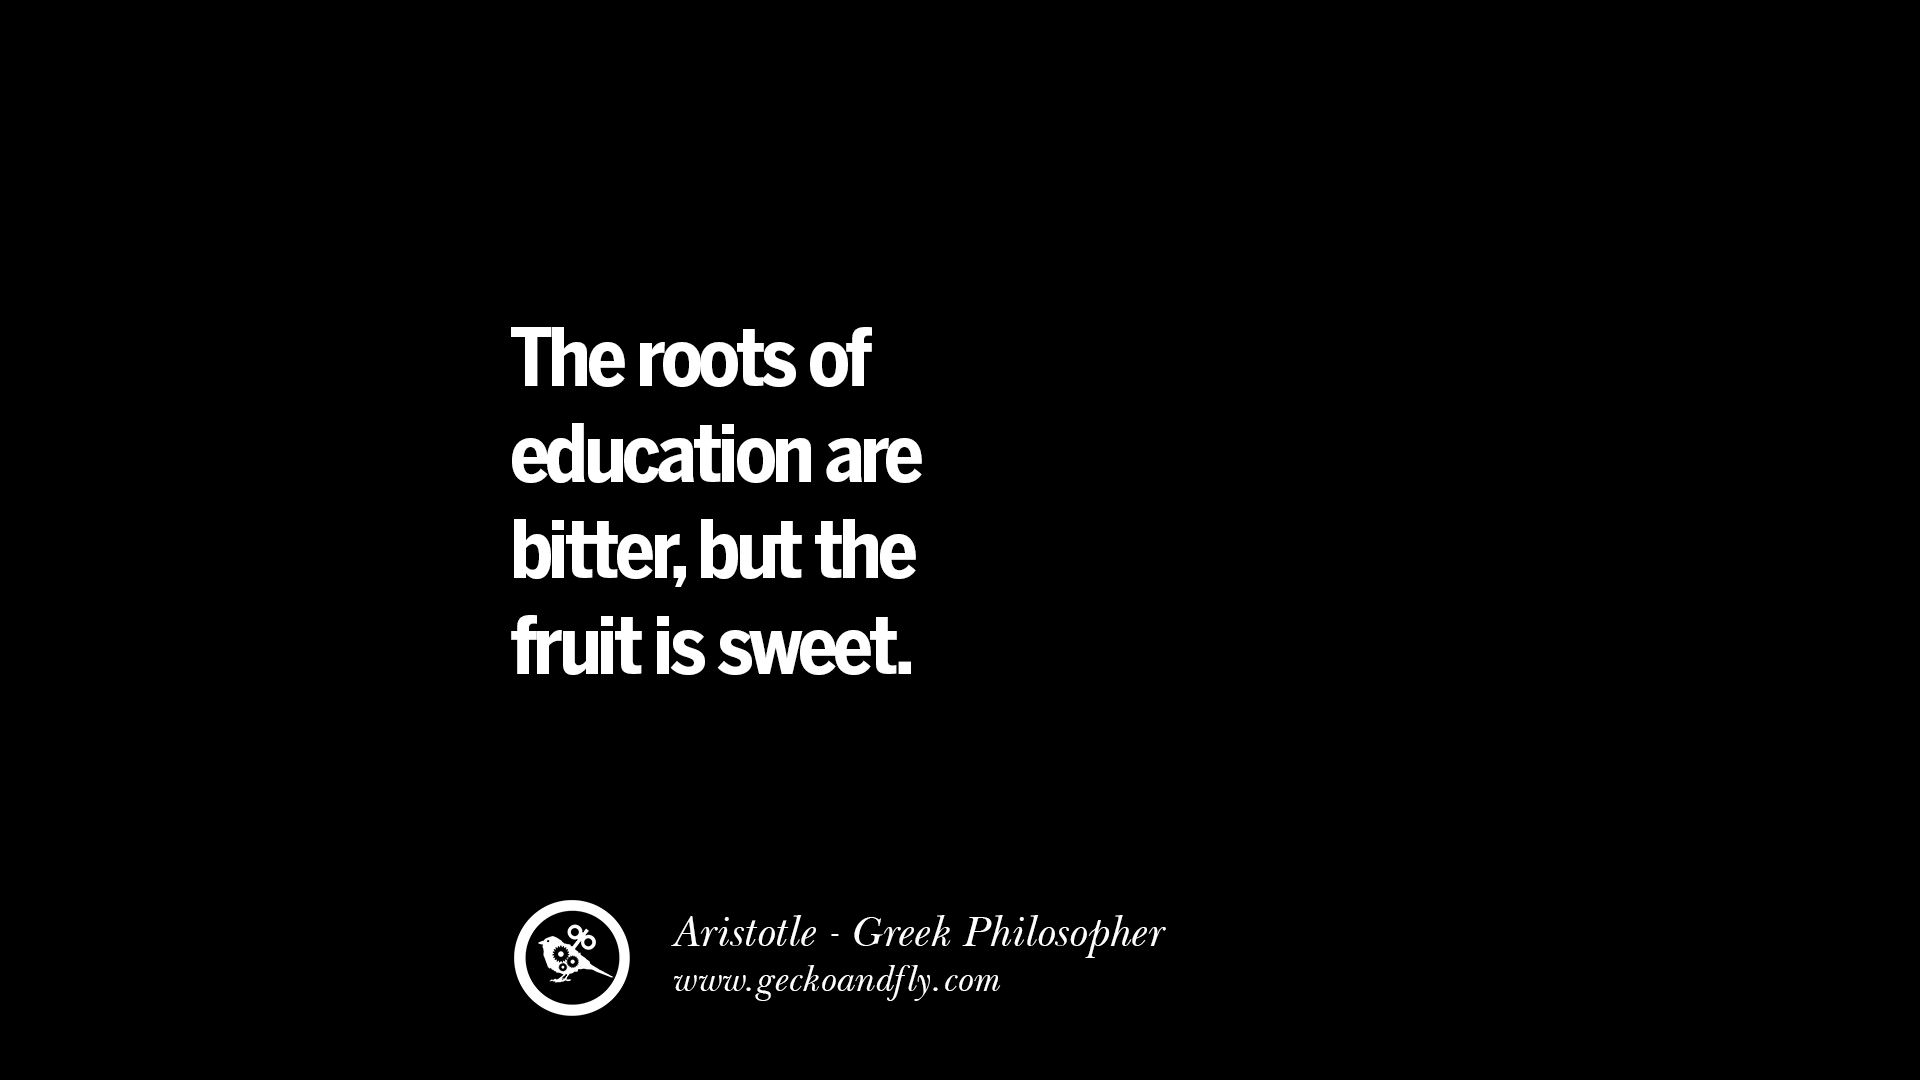 Image of: Students Famous Aristotle Quotes The Roots Of Education Are Bitter But The Fruit Is Sweet Geckoandfly 40 Famous Aristotle Quotes On Ethics Love Life Politics And Education